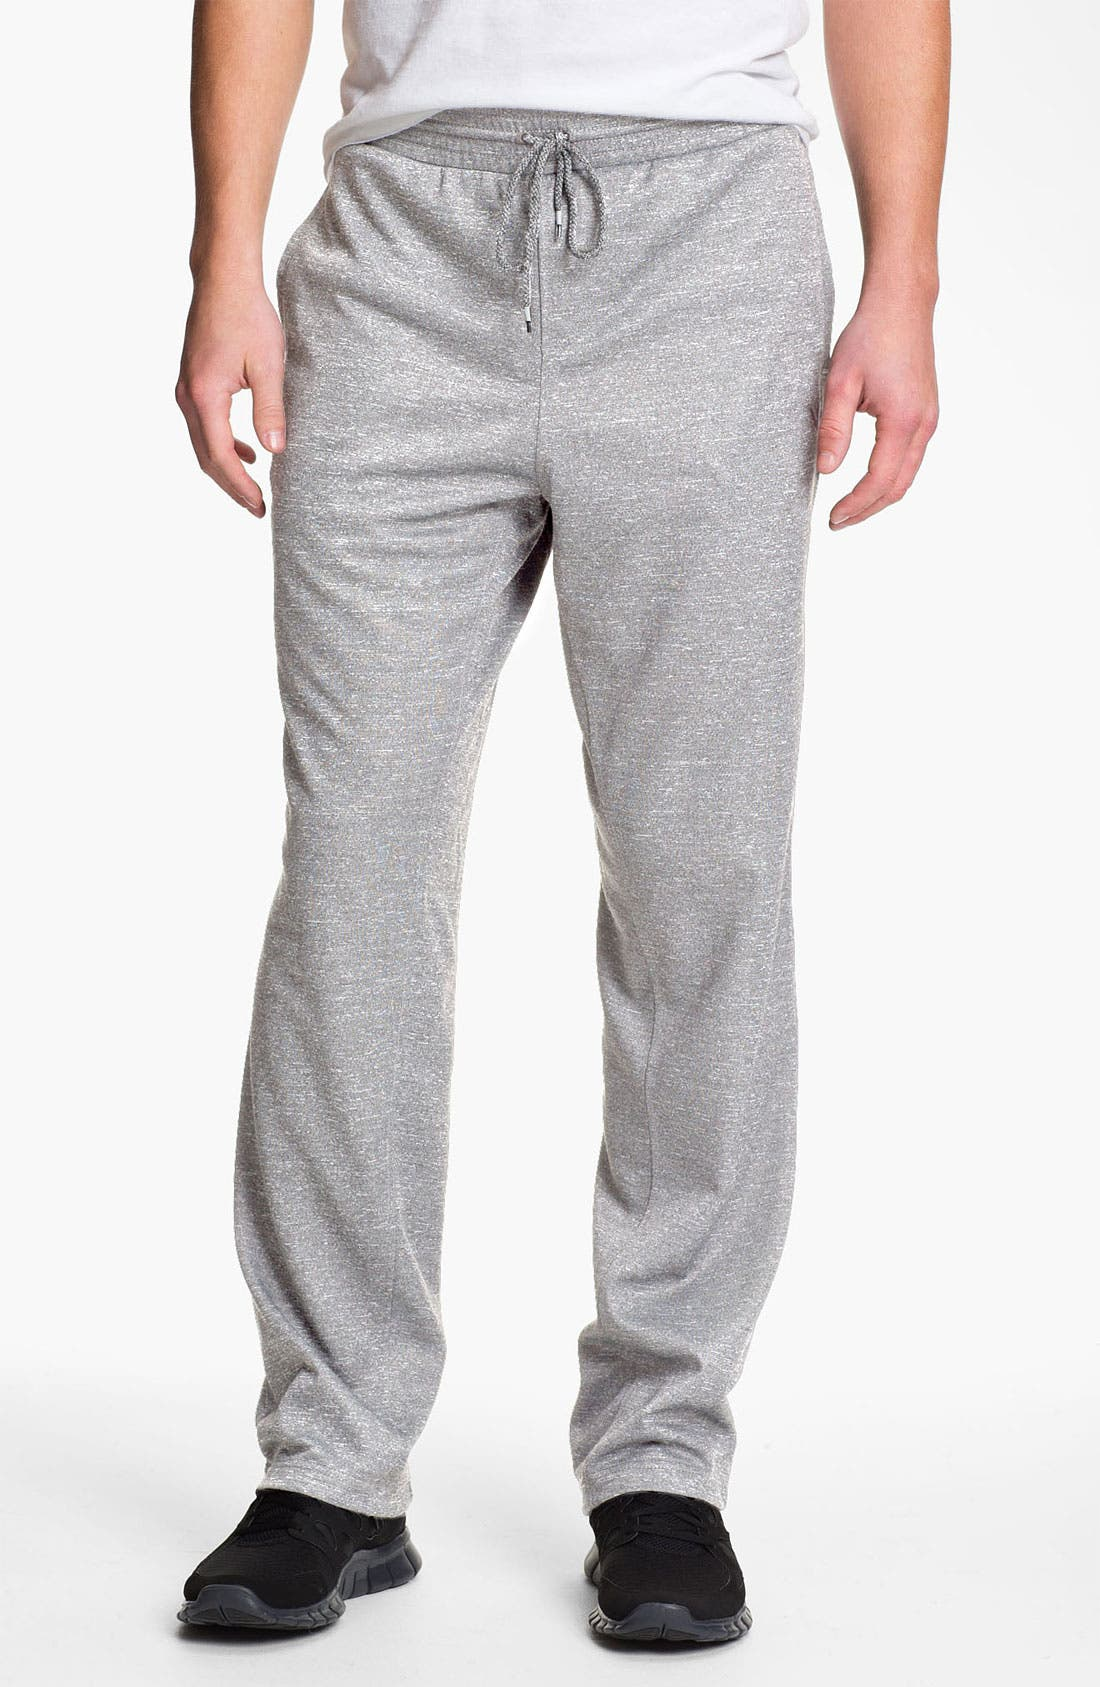 Alternate Image 1 Selected - RVCA 'Therman' Lounge Pants